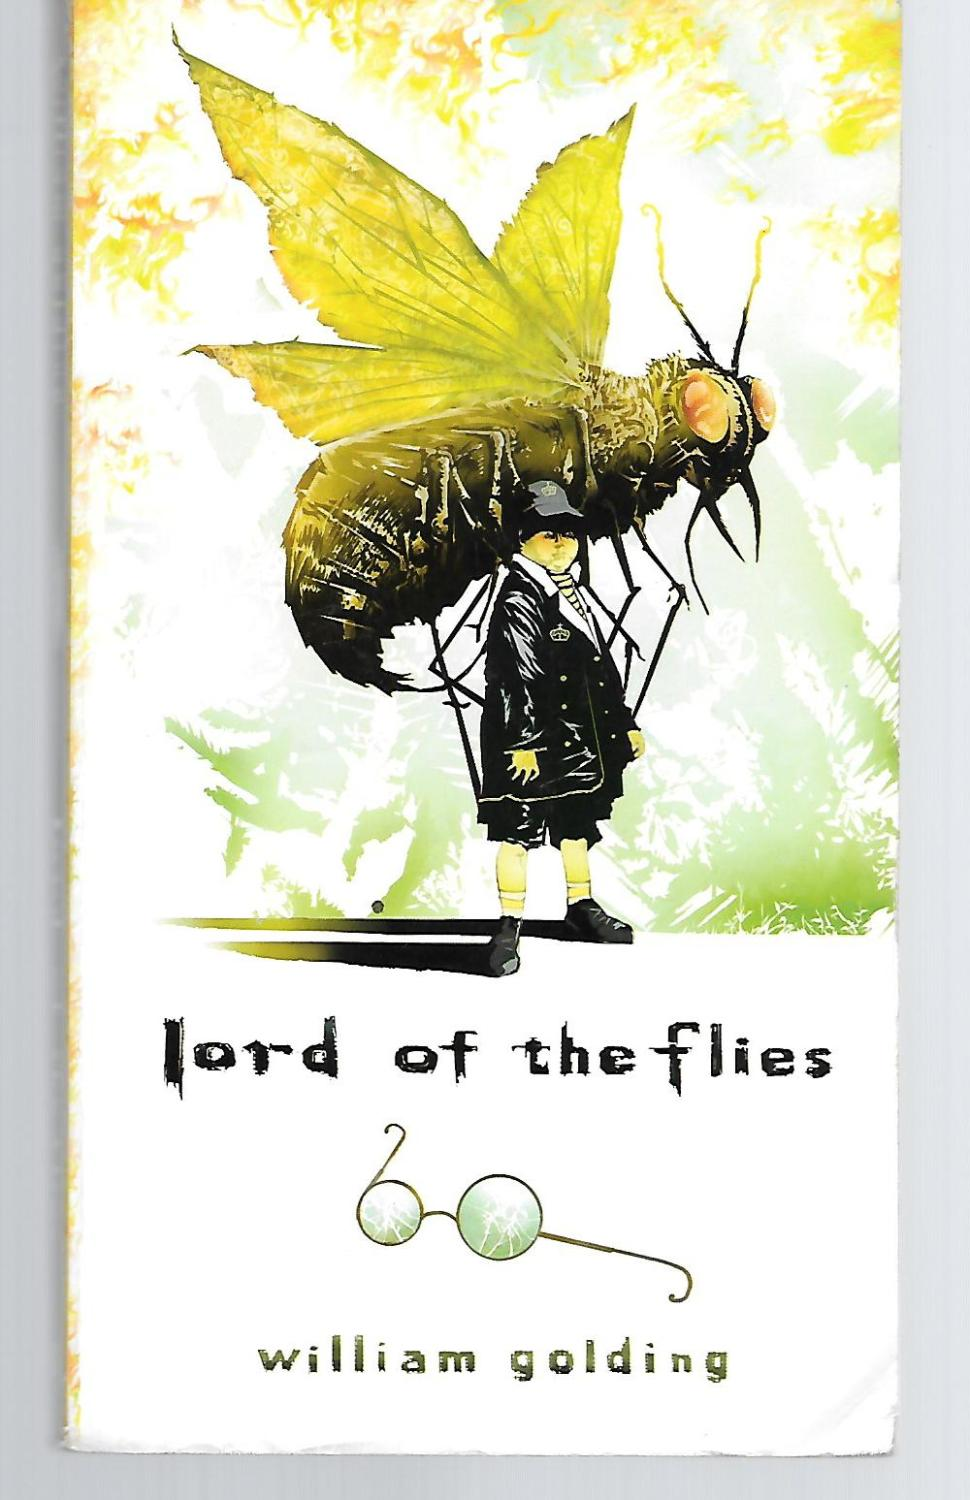 lord flies not notes not explore not educational by william lord flies not notes not explore not educational by william golding abebooks